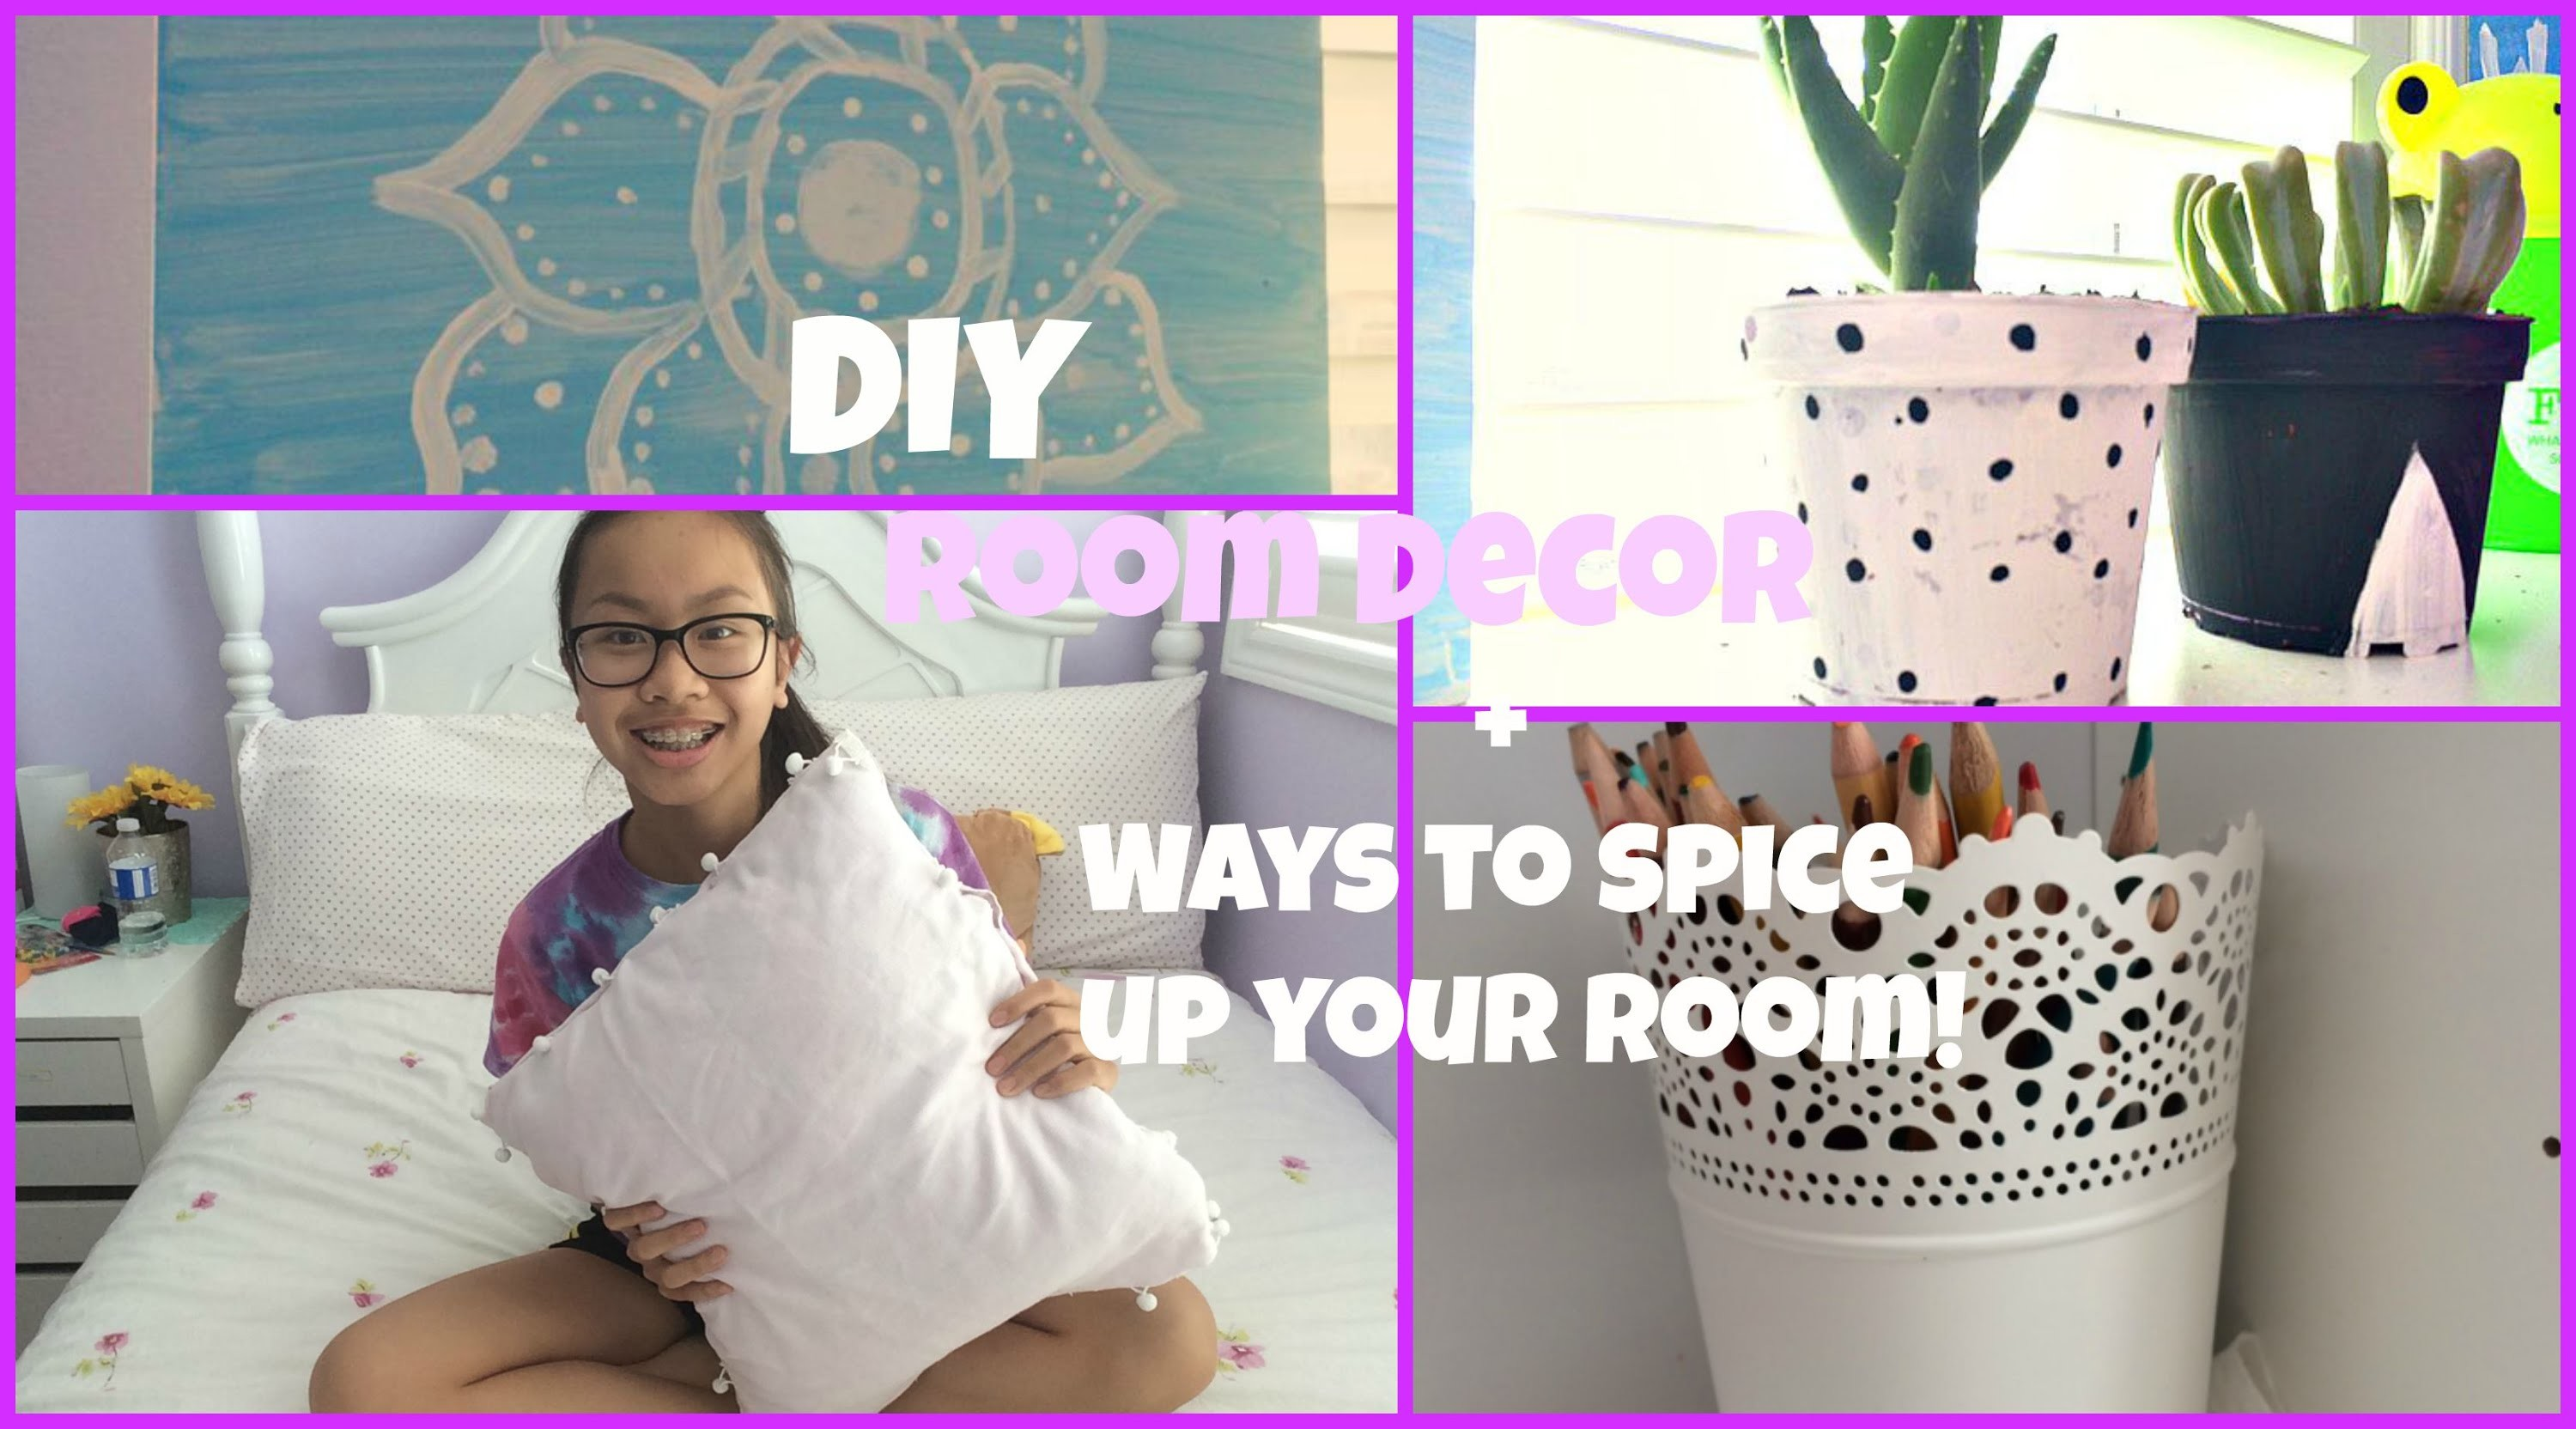 Diy room decor+ways to spice up your room!